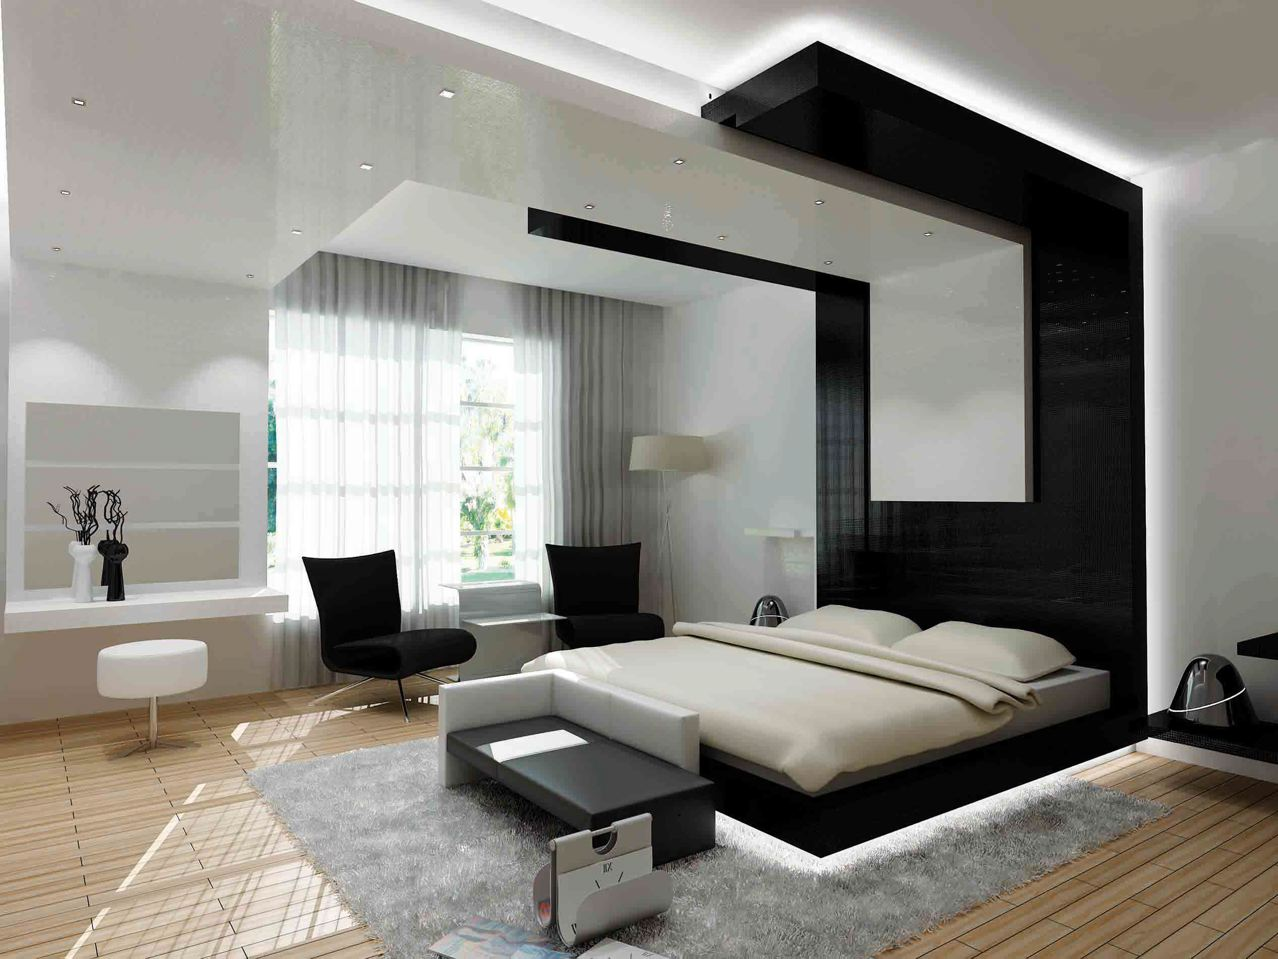 25 Cool Bedroom Designs Collection - The WoW Style on Cool Bedroom Ideas For Small Rooms  id=43196